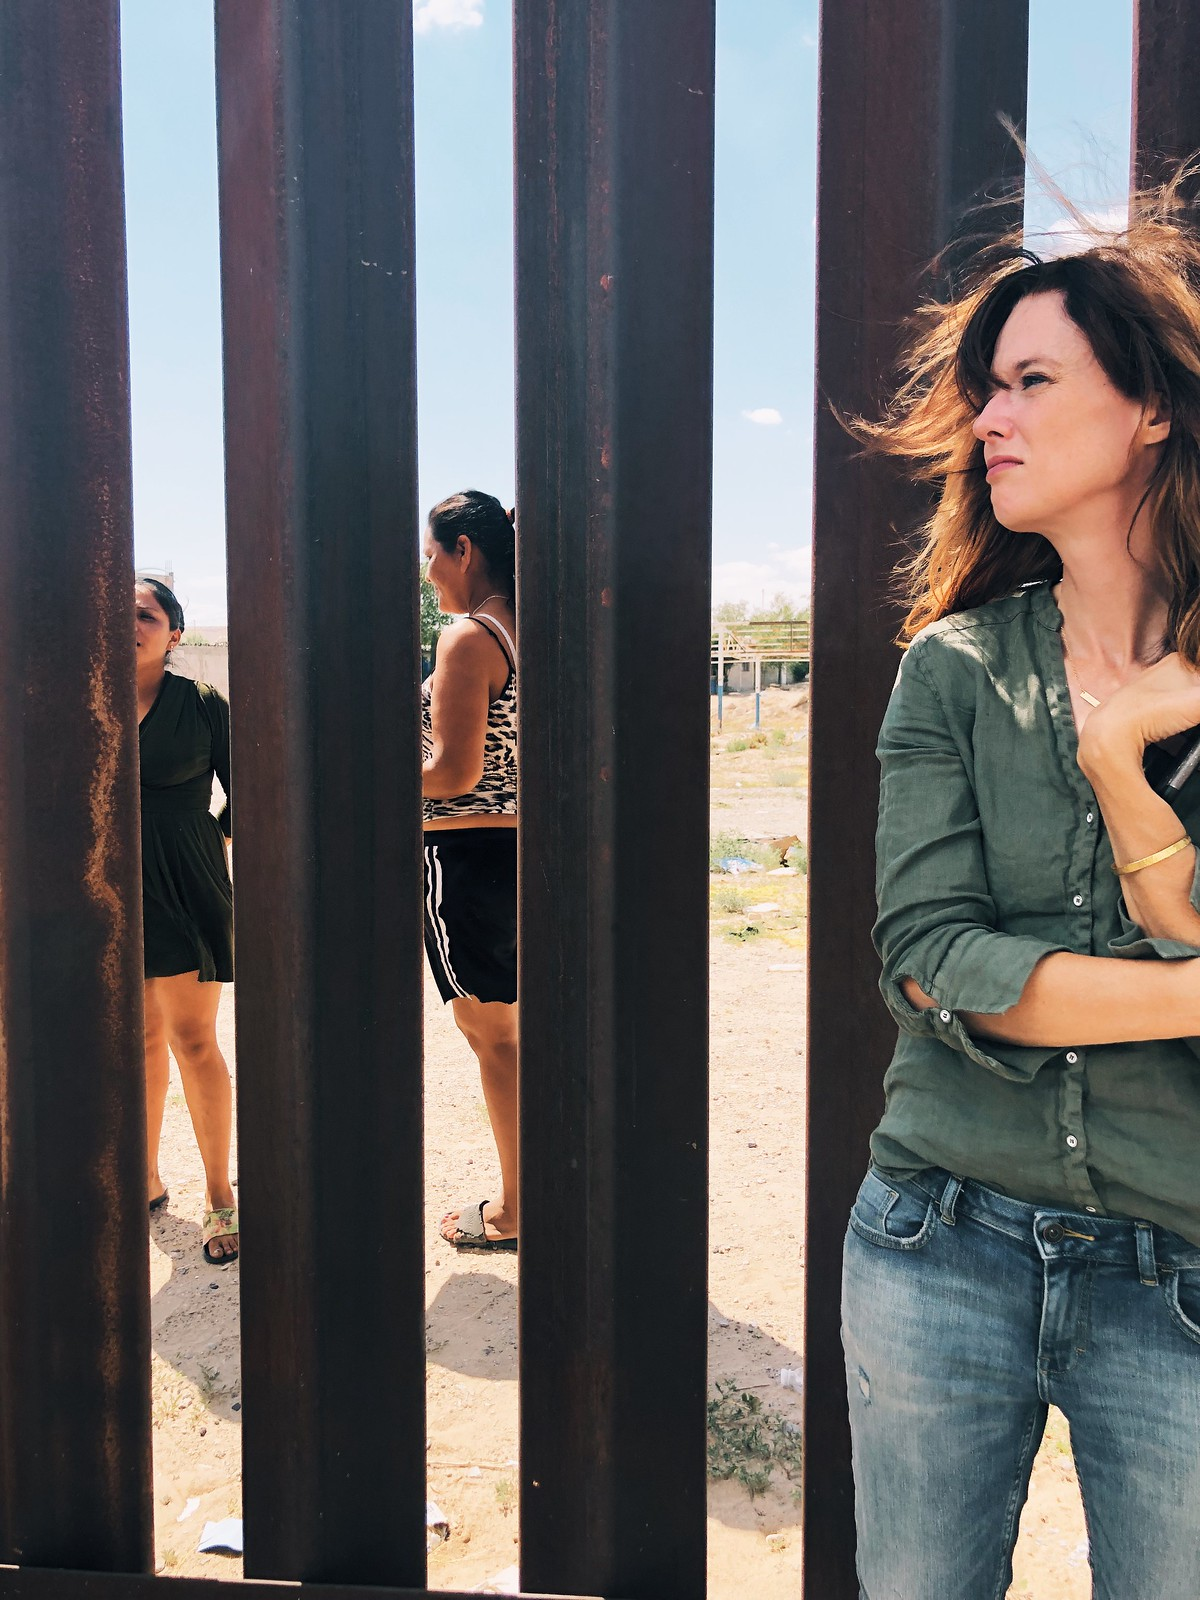 I Went to the Border: How to Make Room for Christ in the Border Crisis this Giving Tuesday